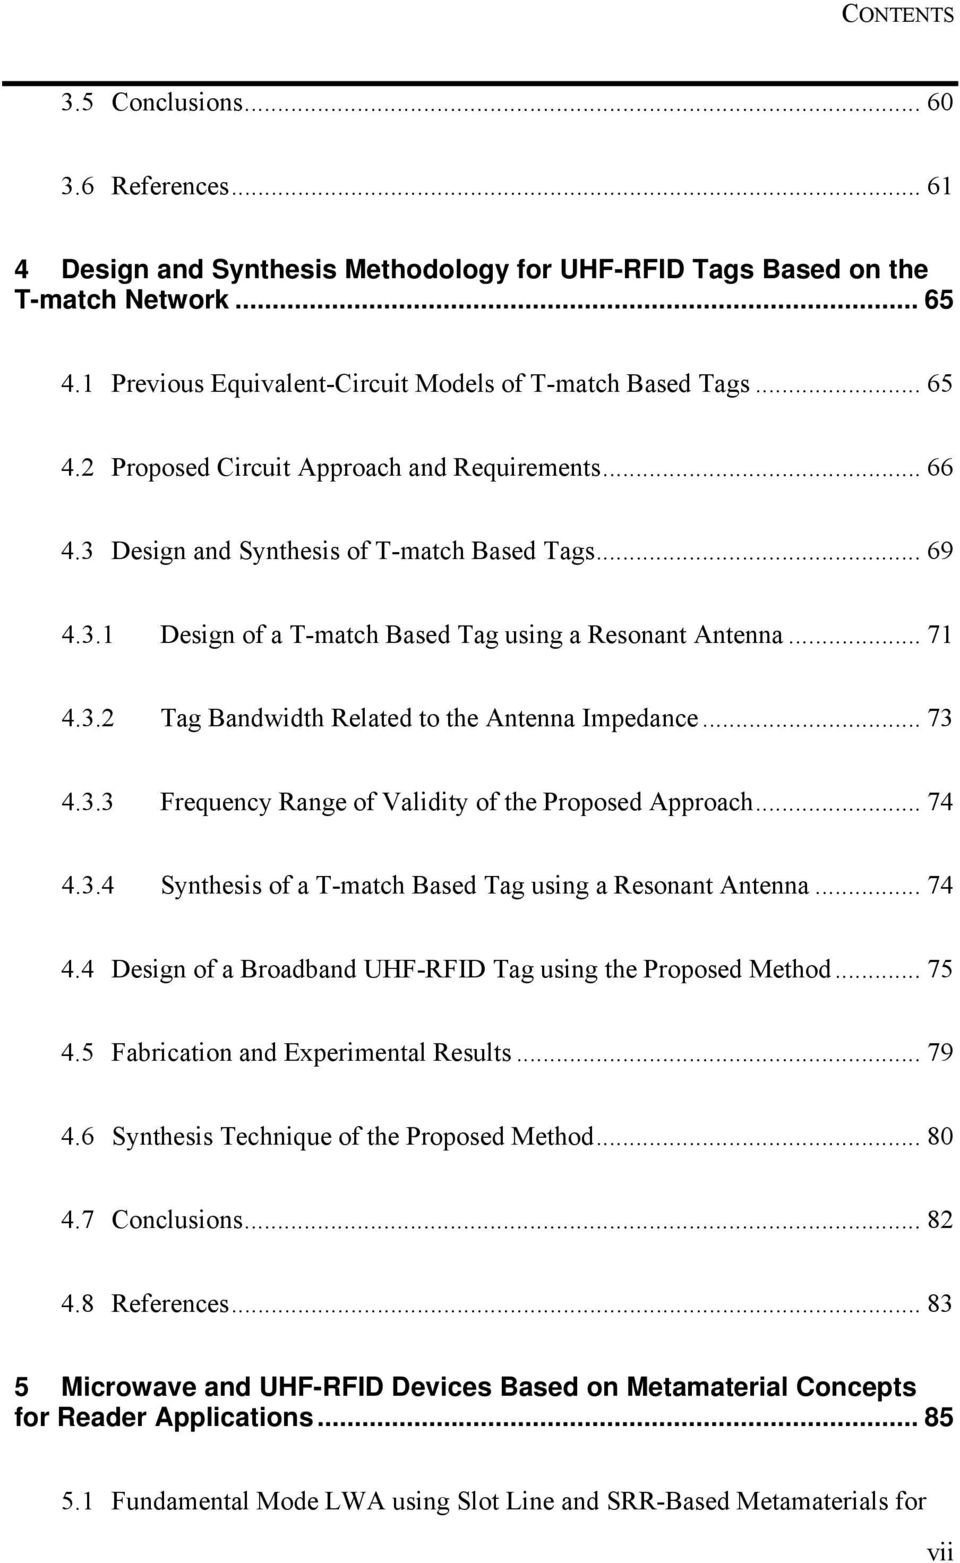 .. 71 4.3.2 Tag Bandwidth Related to the Antenna Impedance... 73 4.3.3 Frequency Range of Validity of the Proposed Approach... 74 4.3.4 Synthesis of a T-match Based Tag using a Resonant Antenna... 74 4.4 Design of a Broadband UHF-RFID Tag using the Proposed Method.